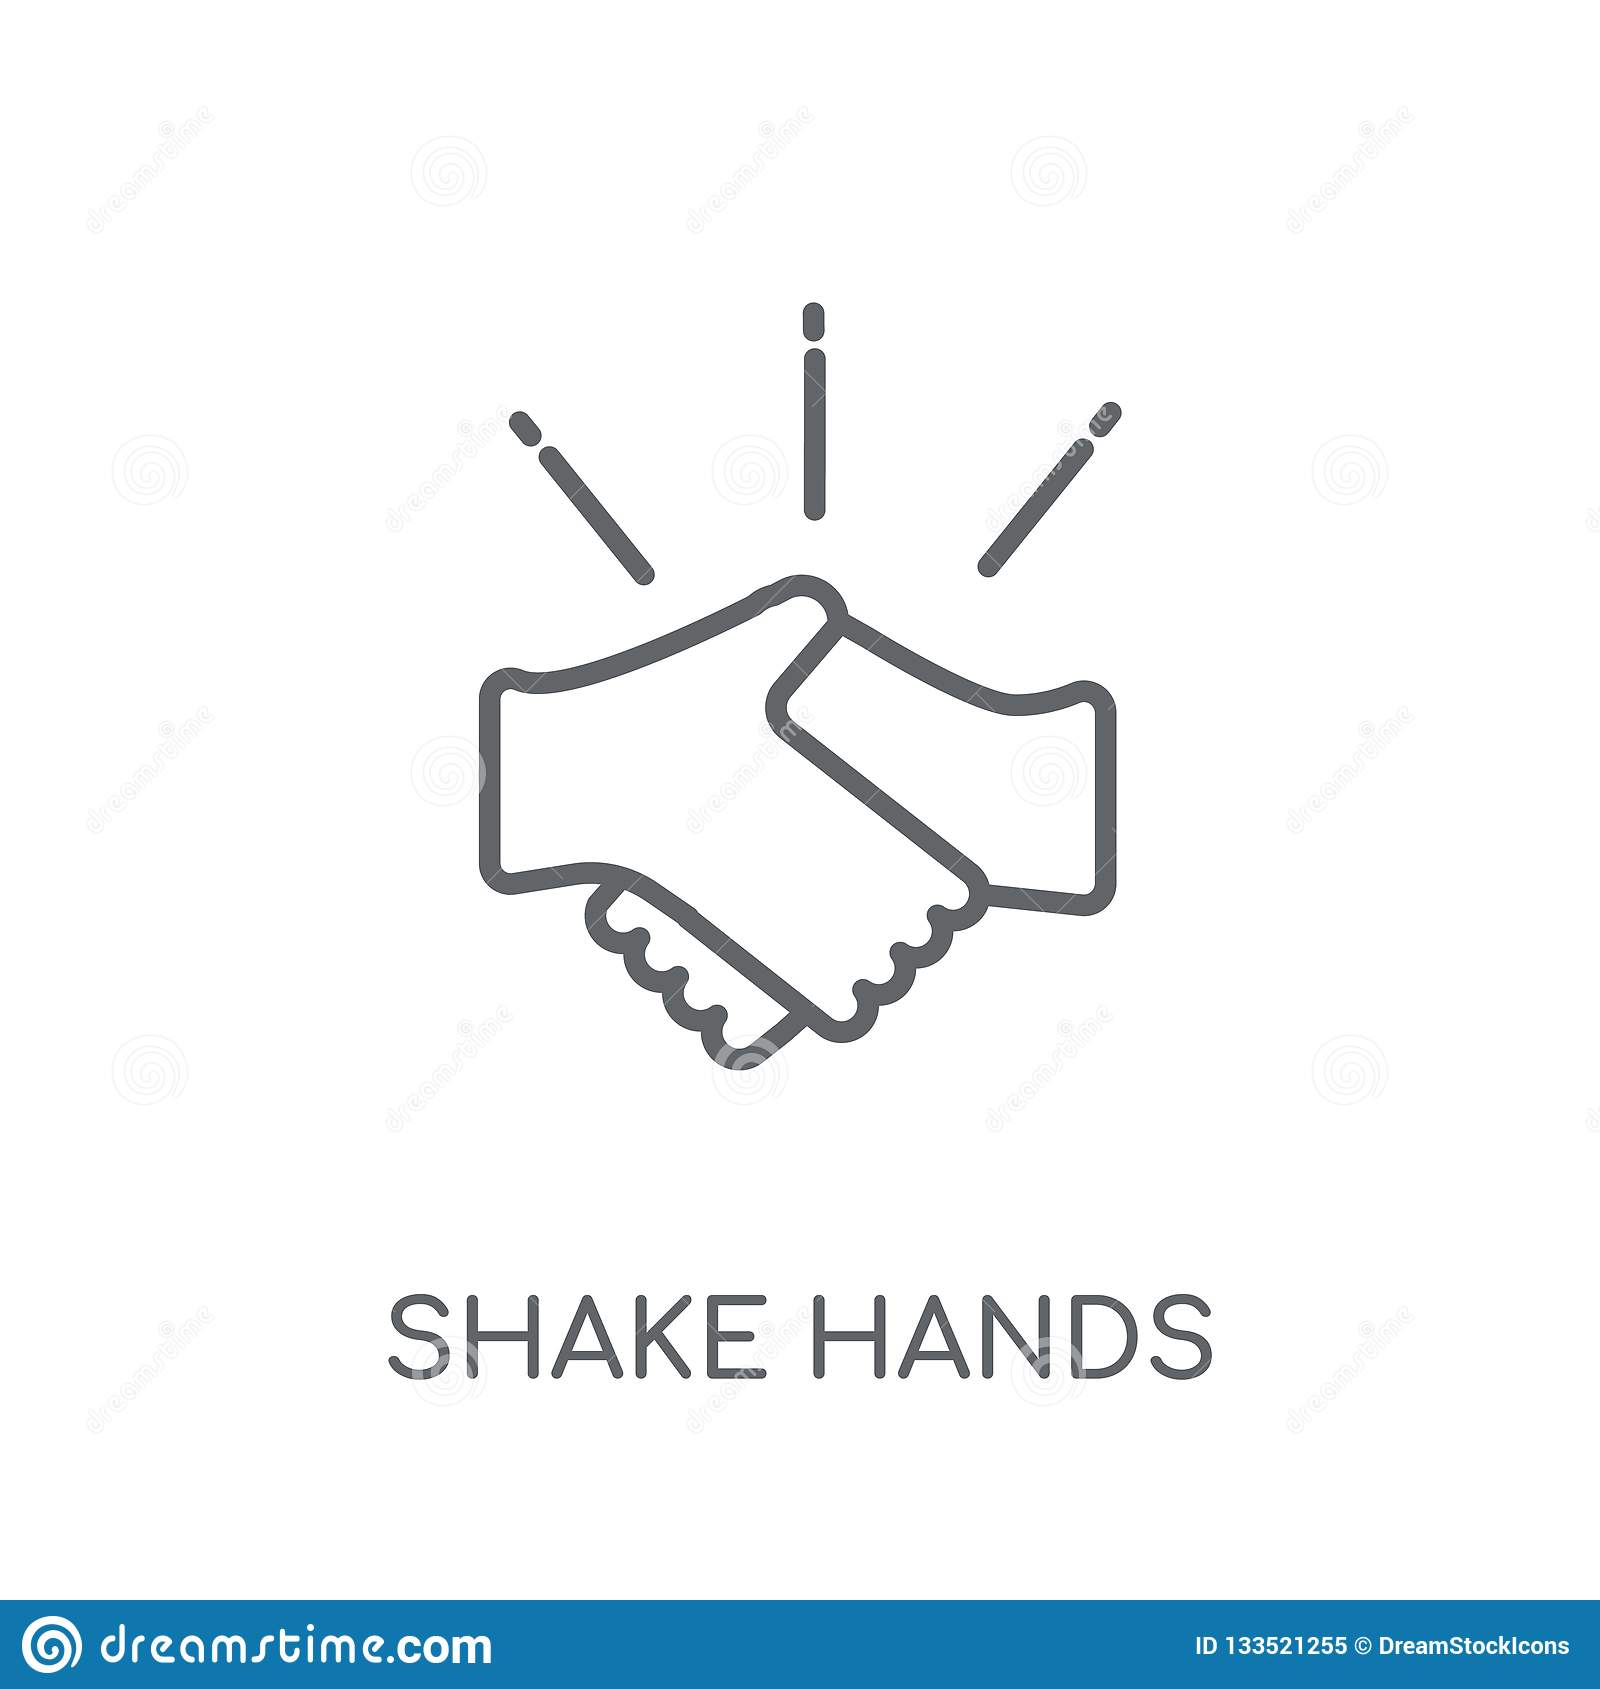 Shake hands linear icon. Modern outline Shake hands logo concept